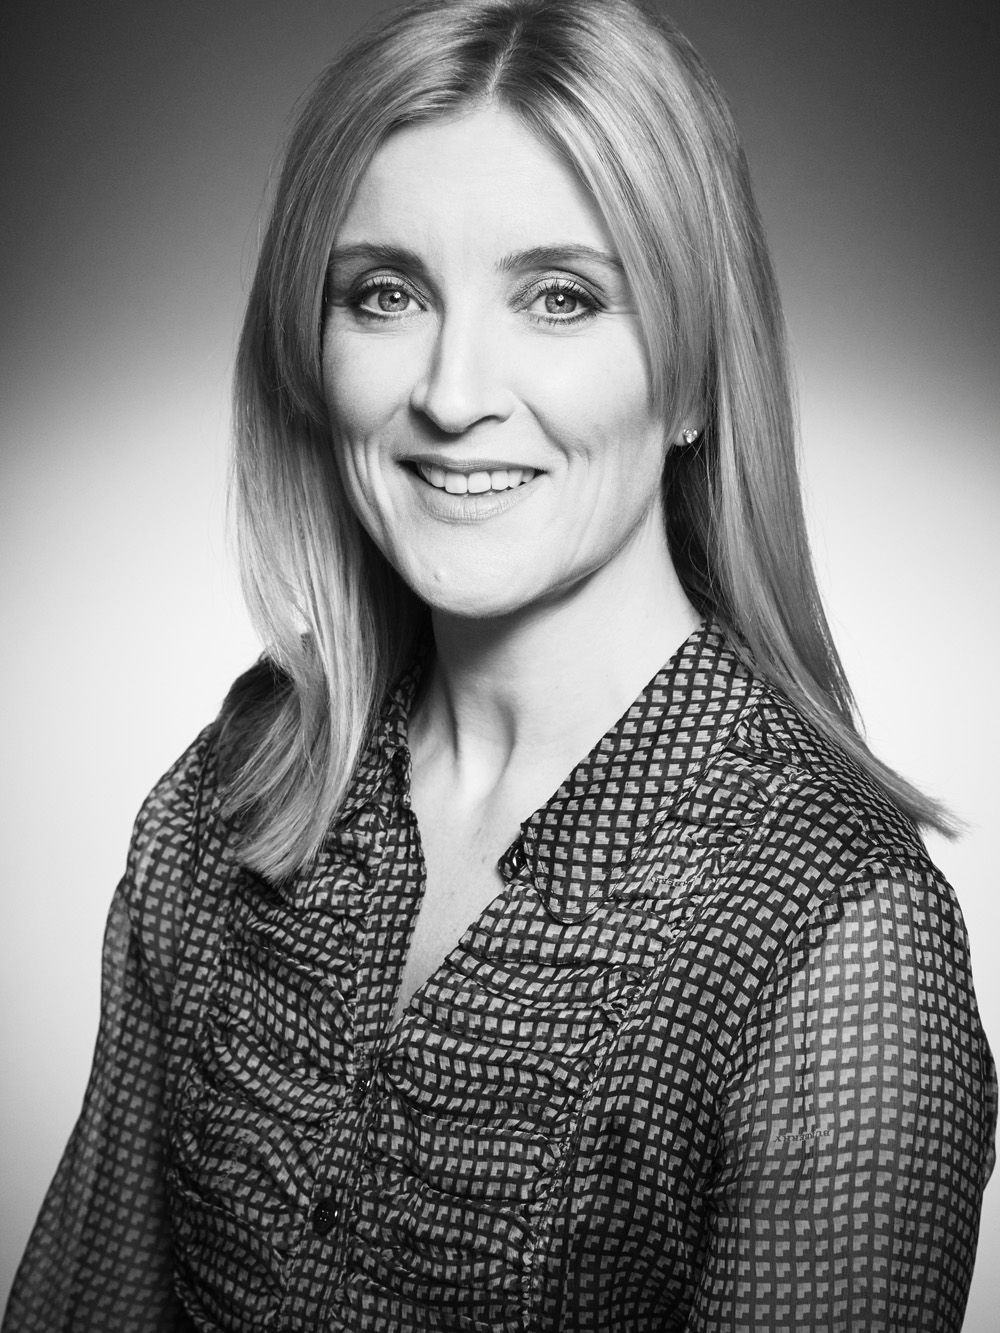 Anna Bartle Among The Judges For This Year's Fashion And